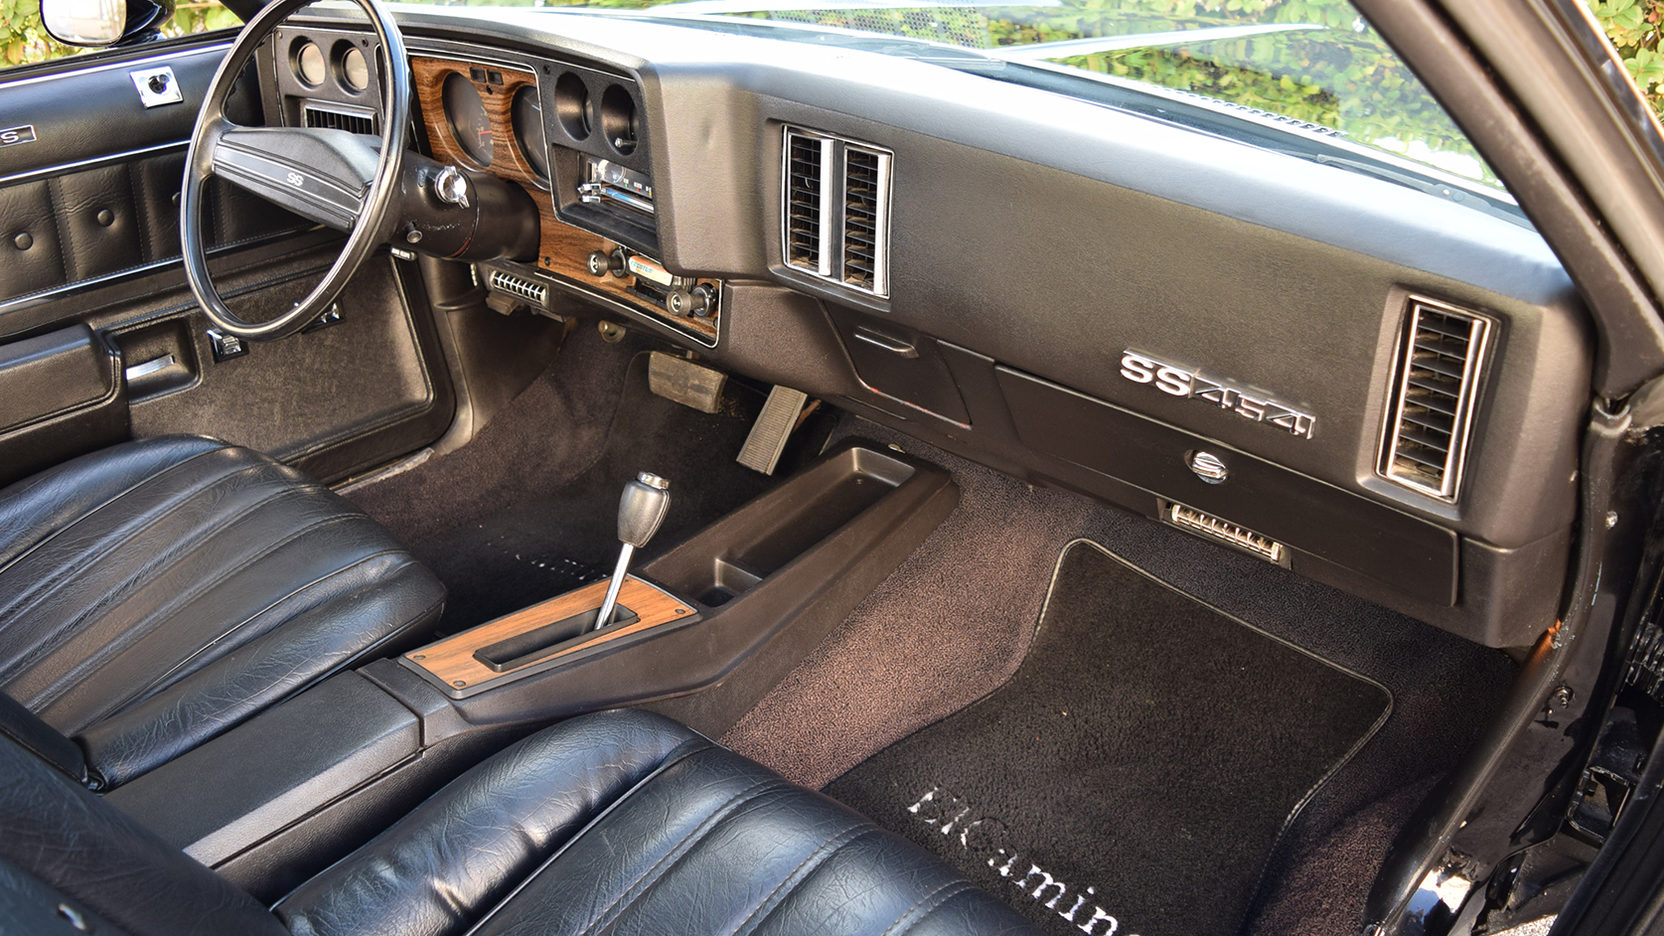 hight resolution of 1974 chevrolet el camino ss 9 full screen